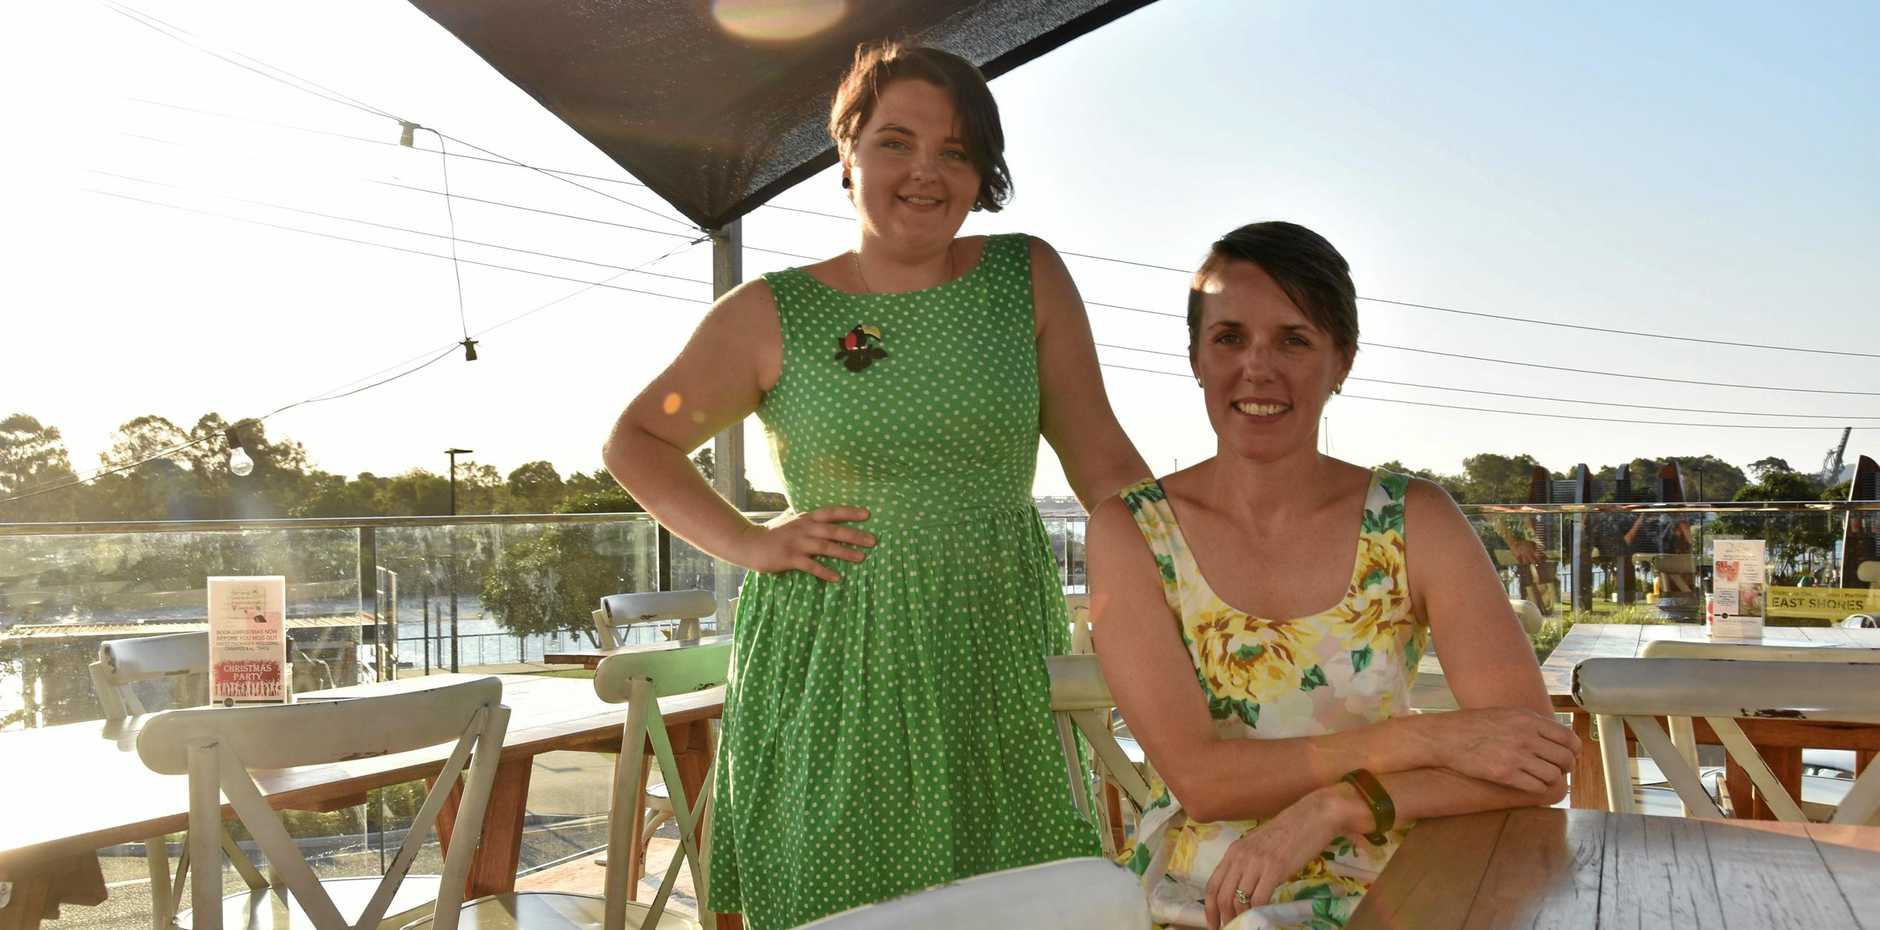 BEAUTIFUL VIEW: Function coordinator Monica Mattingley and Bec Addinall take in the afternoon sun on The Dock's new rooftop deck.